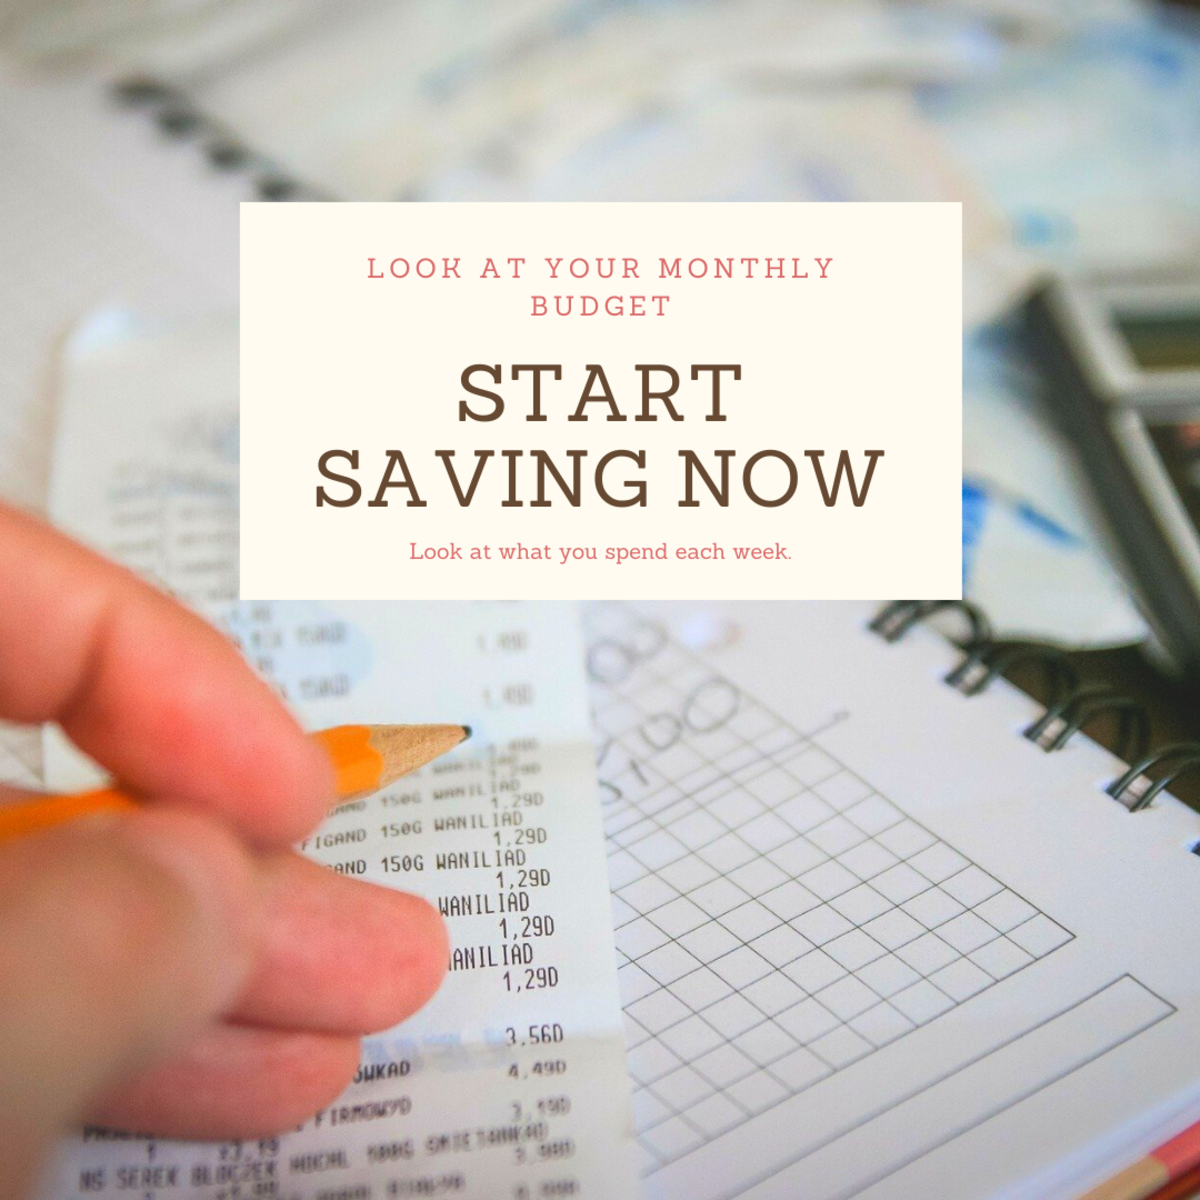 Look at your monthly finances and cut costs where you can.